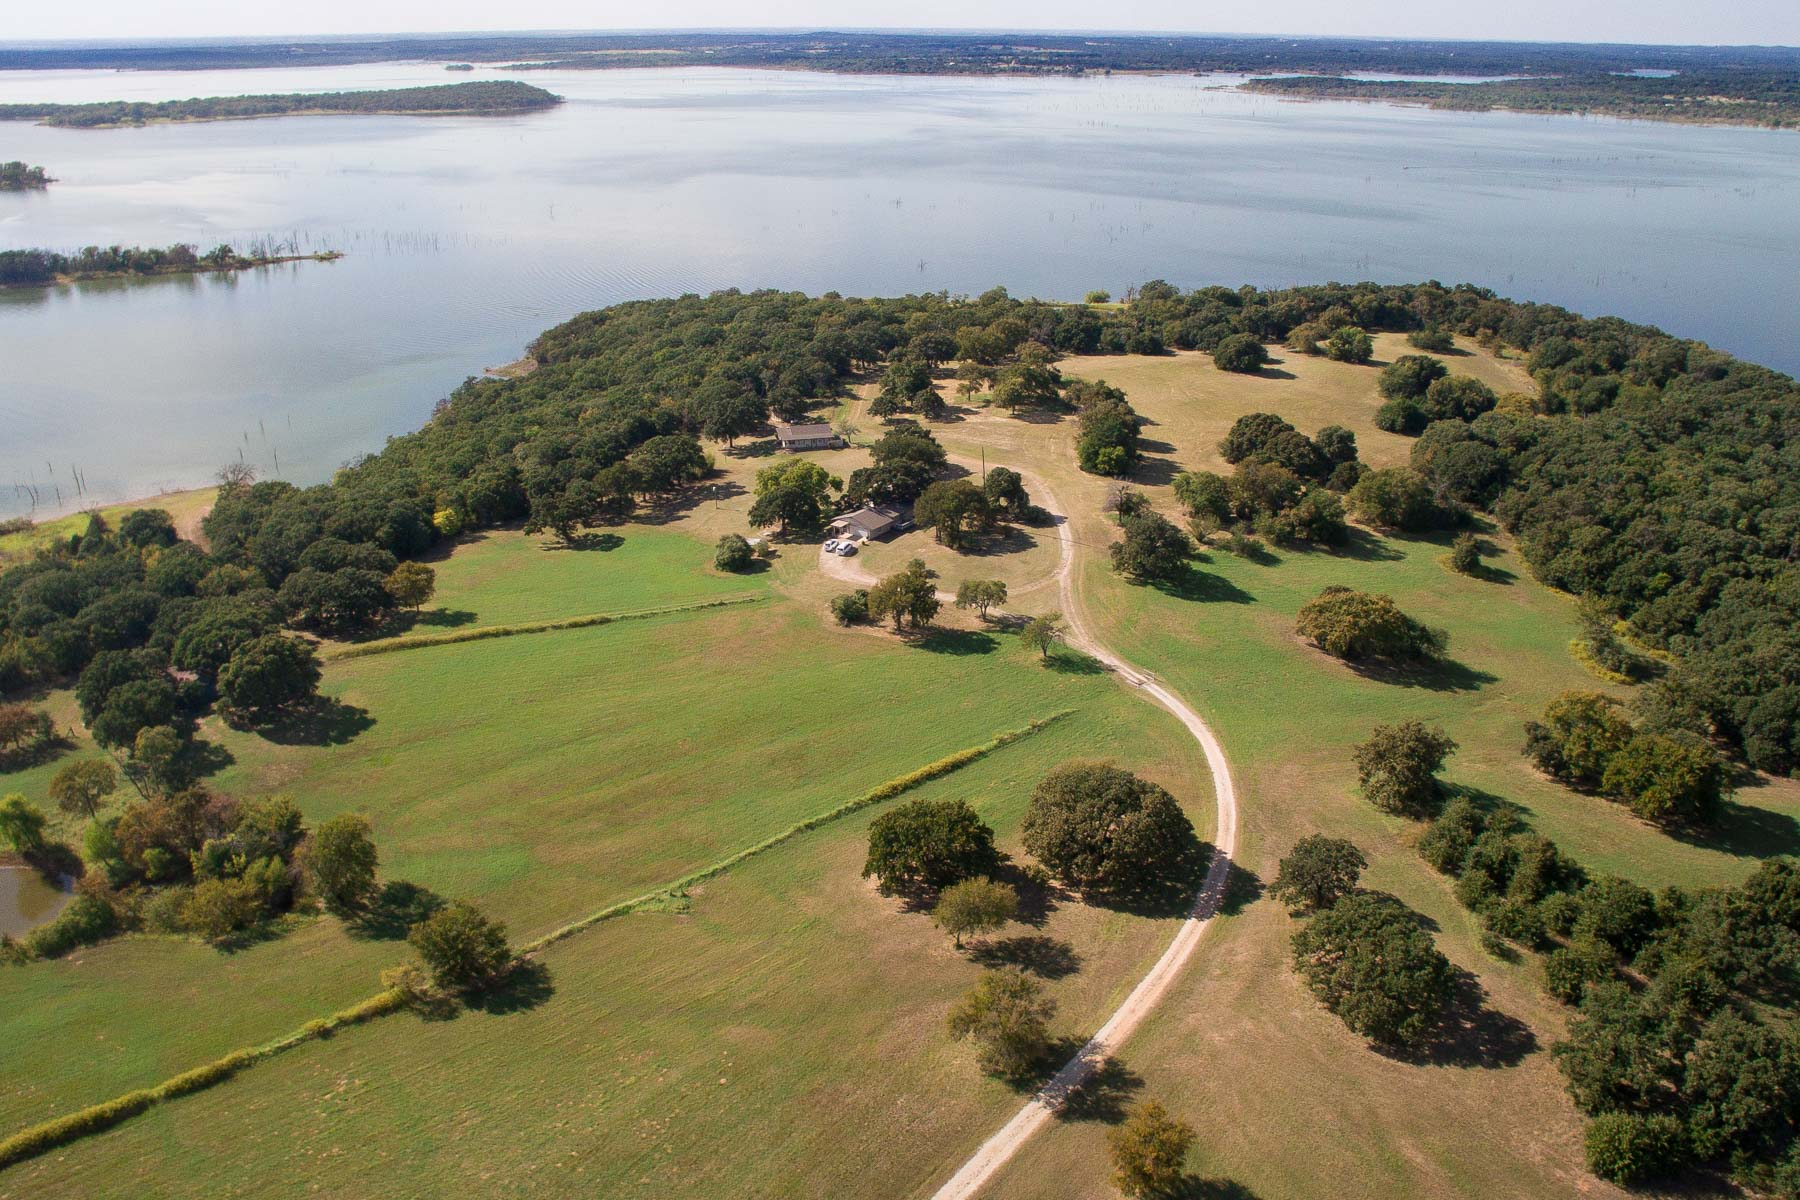 Single Family Home for Sale at Lakeside Retreat 23507 Alexander Rd Pilot Point, Texas 76258 United States